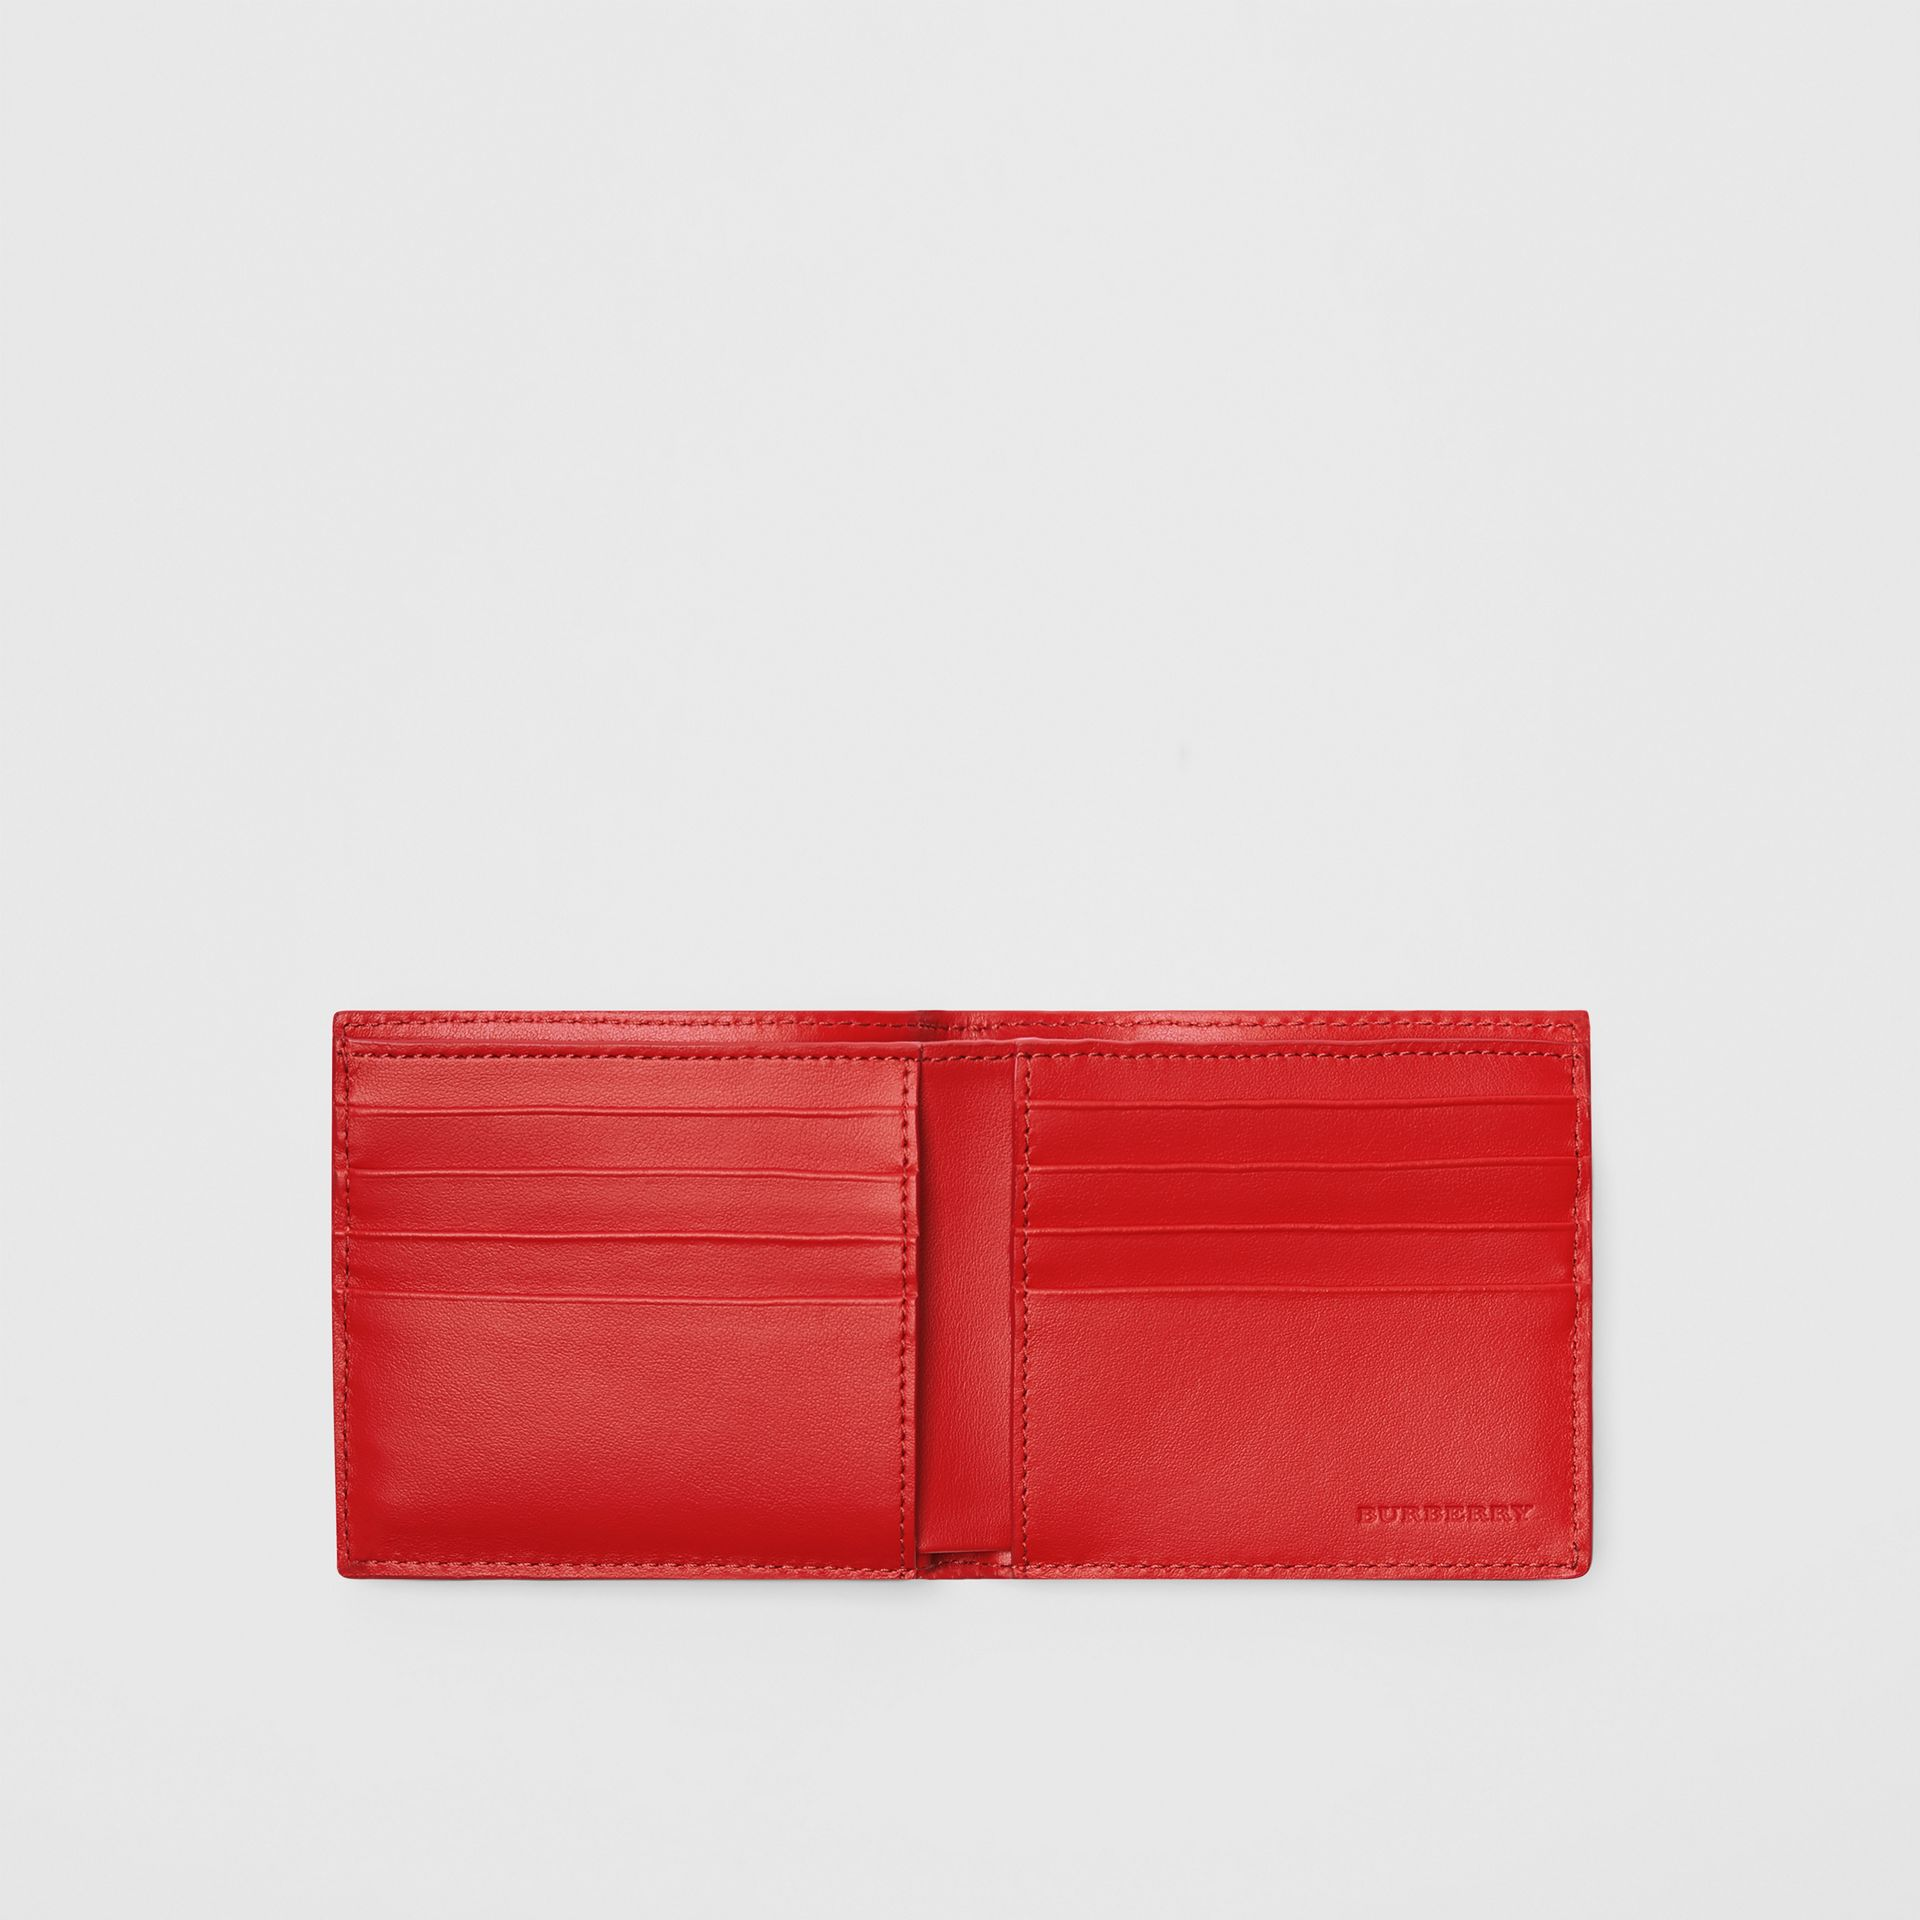 Perforated Check Leather International Bifold Wallet in Rust Red - Men | Burberry Canada - gallery image 2